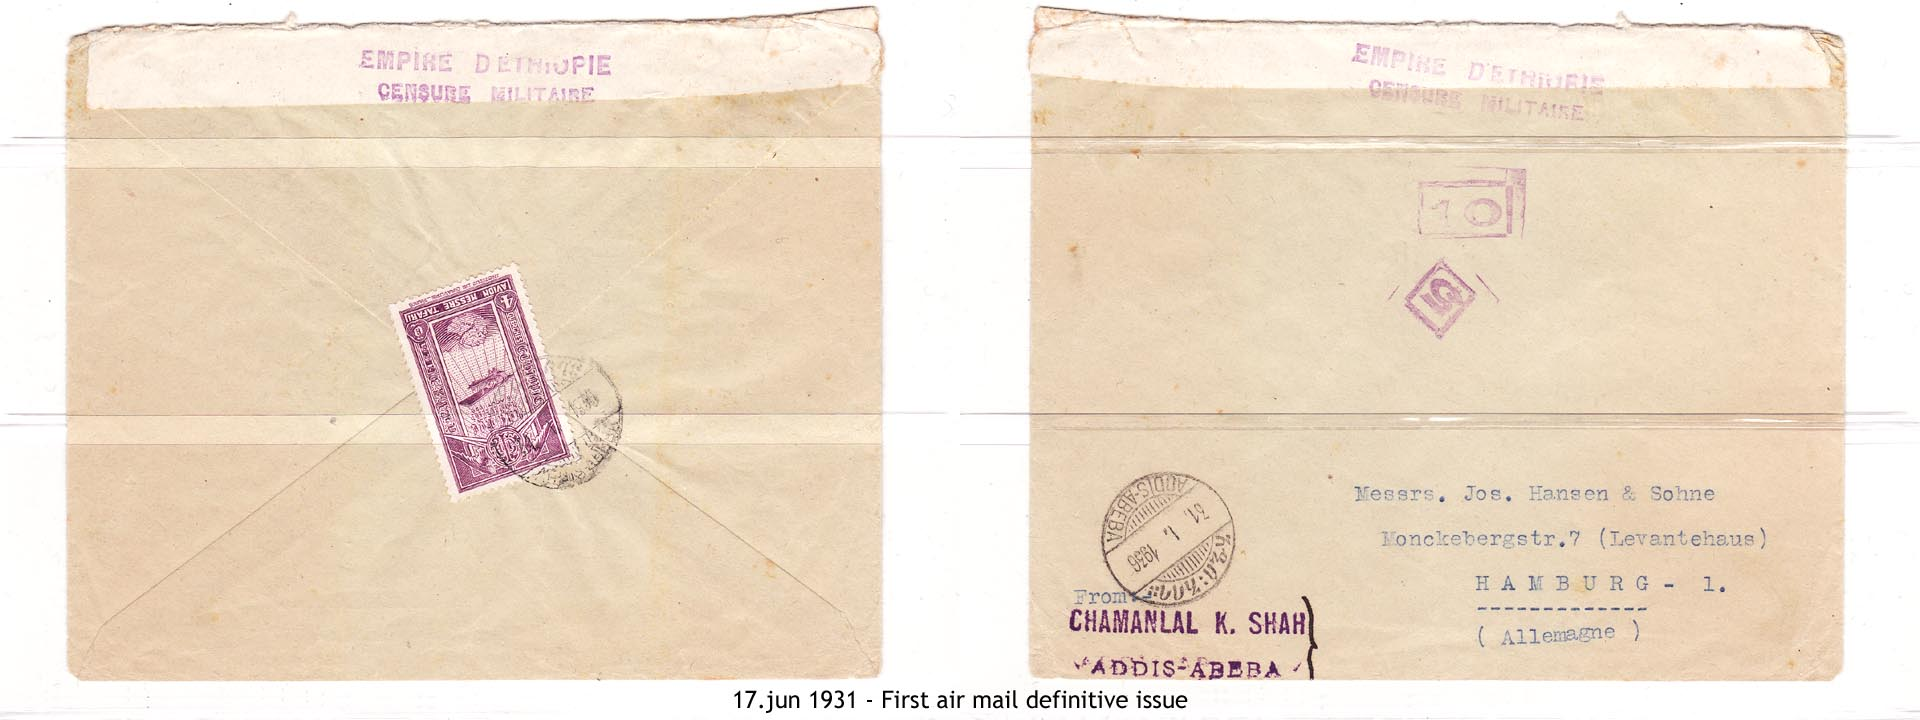 19310617 - First air mail definitive issue